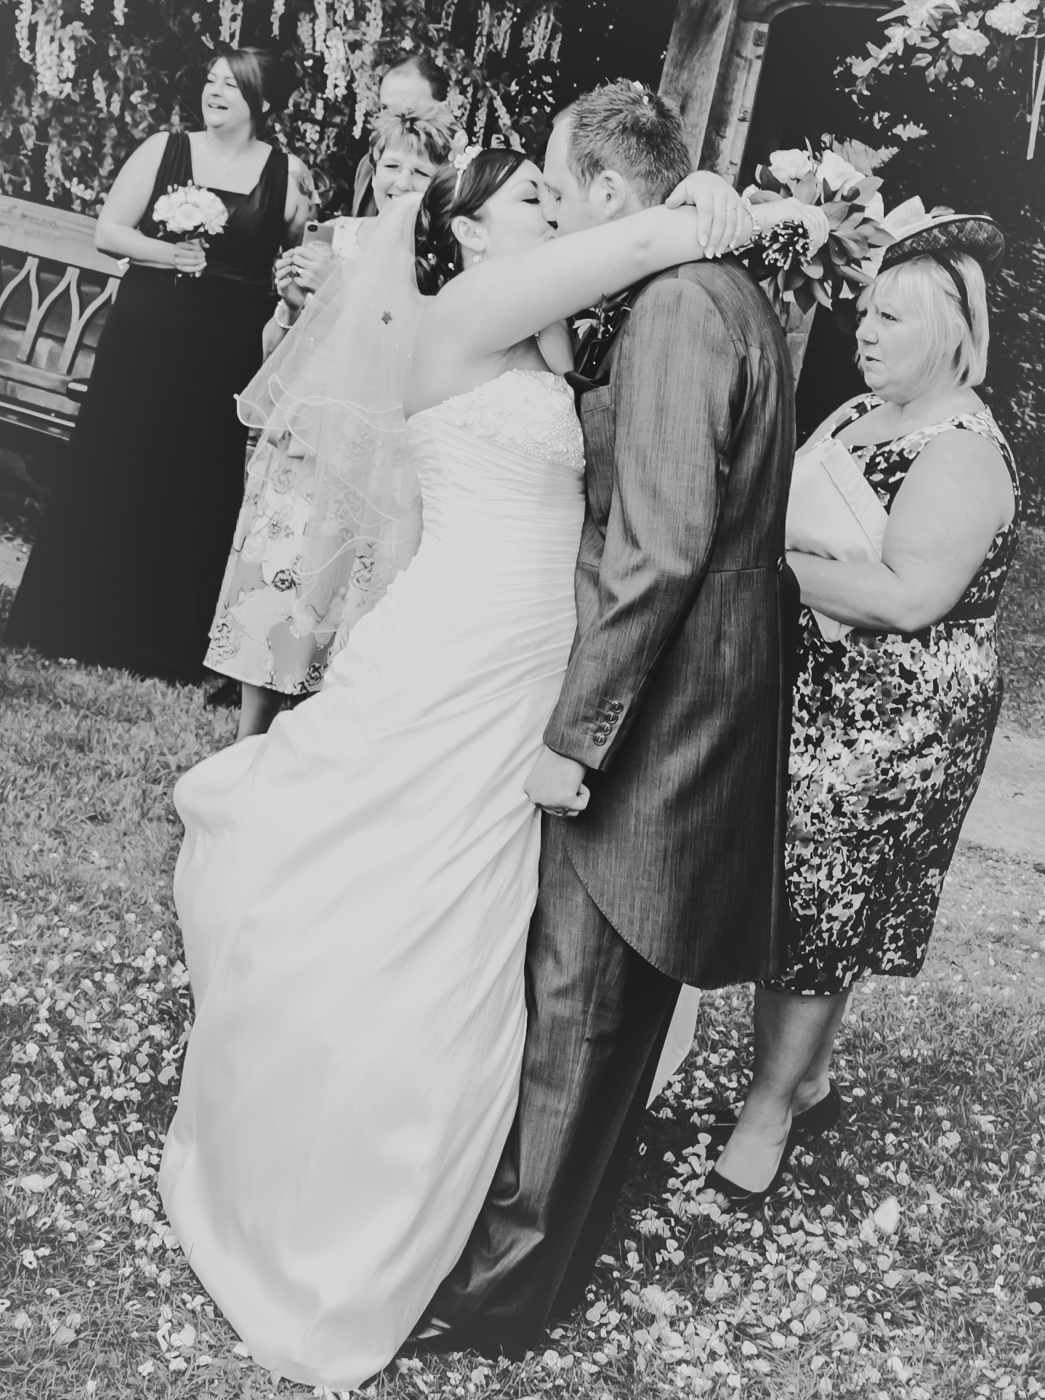 243 - Chris and Natalies Wedding (MAIN) - DO NOT SHARE THIS IMAGES ONLINE -4475.JPG